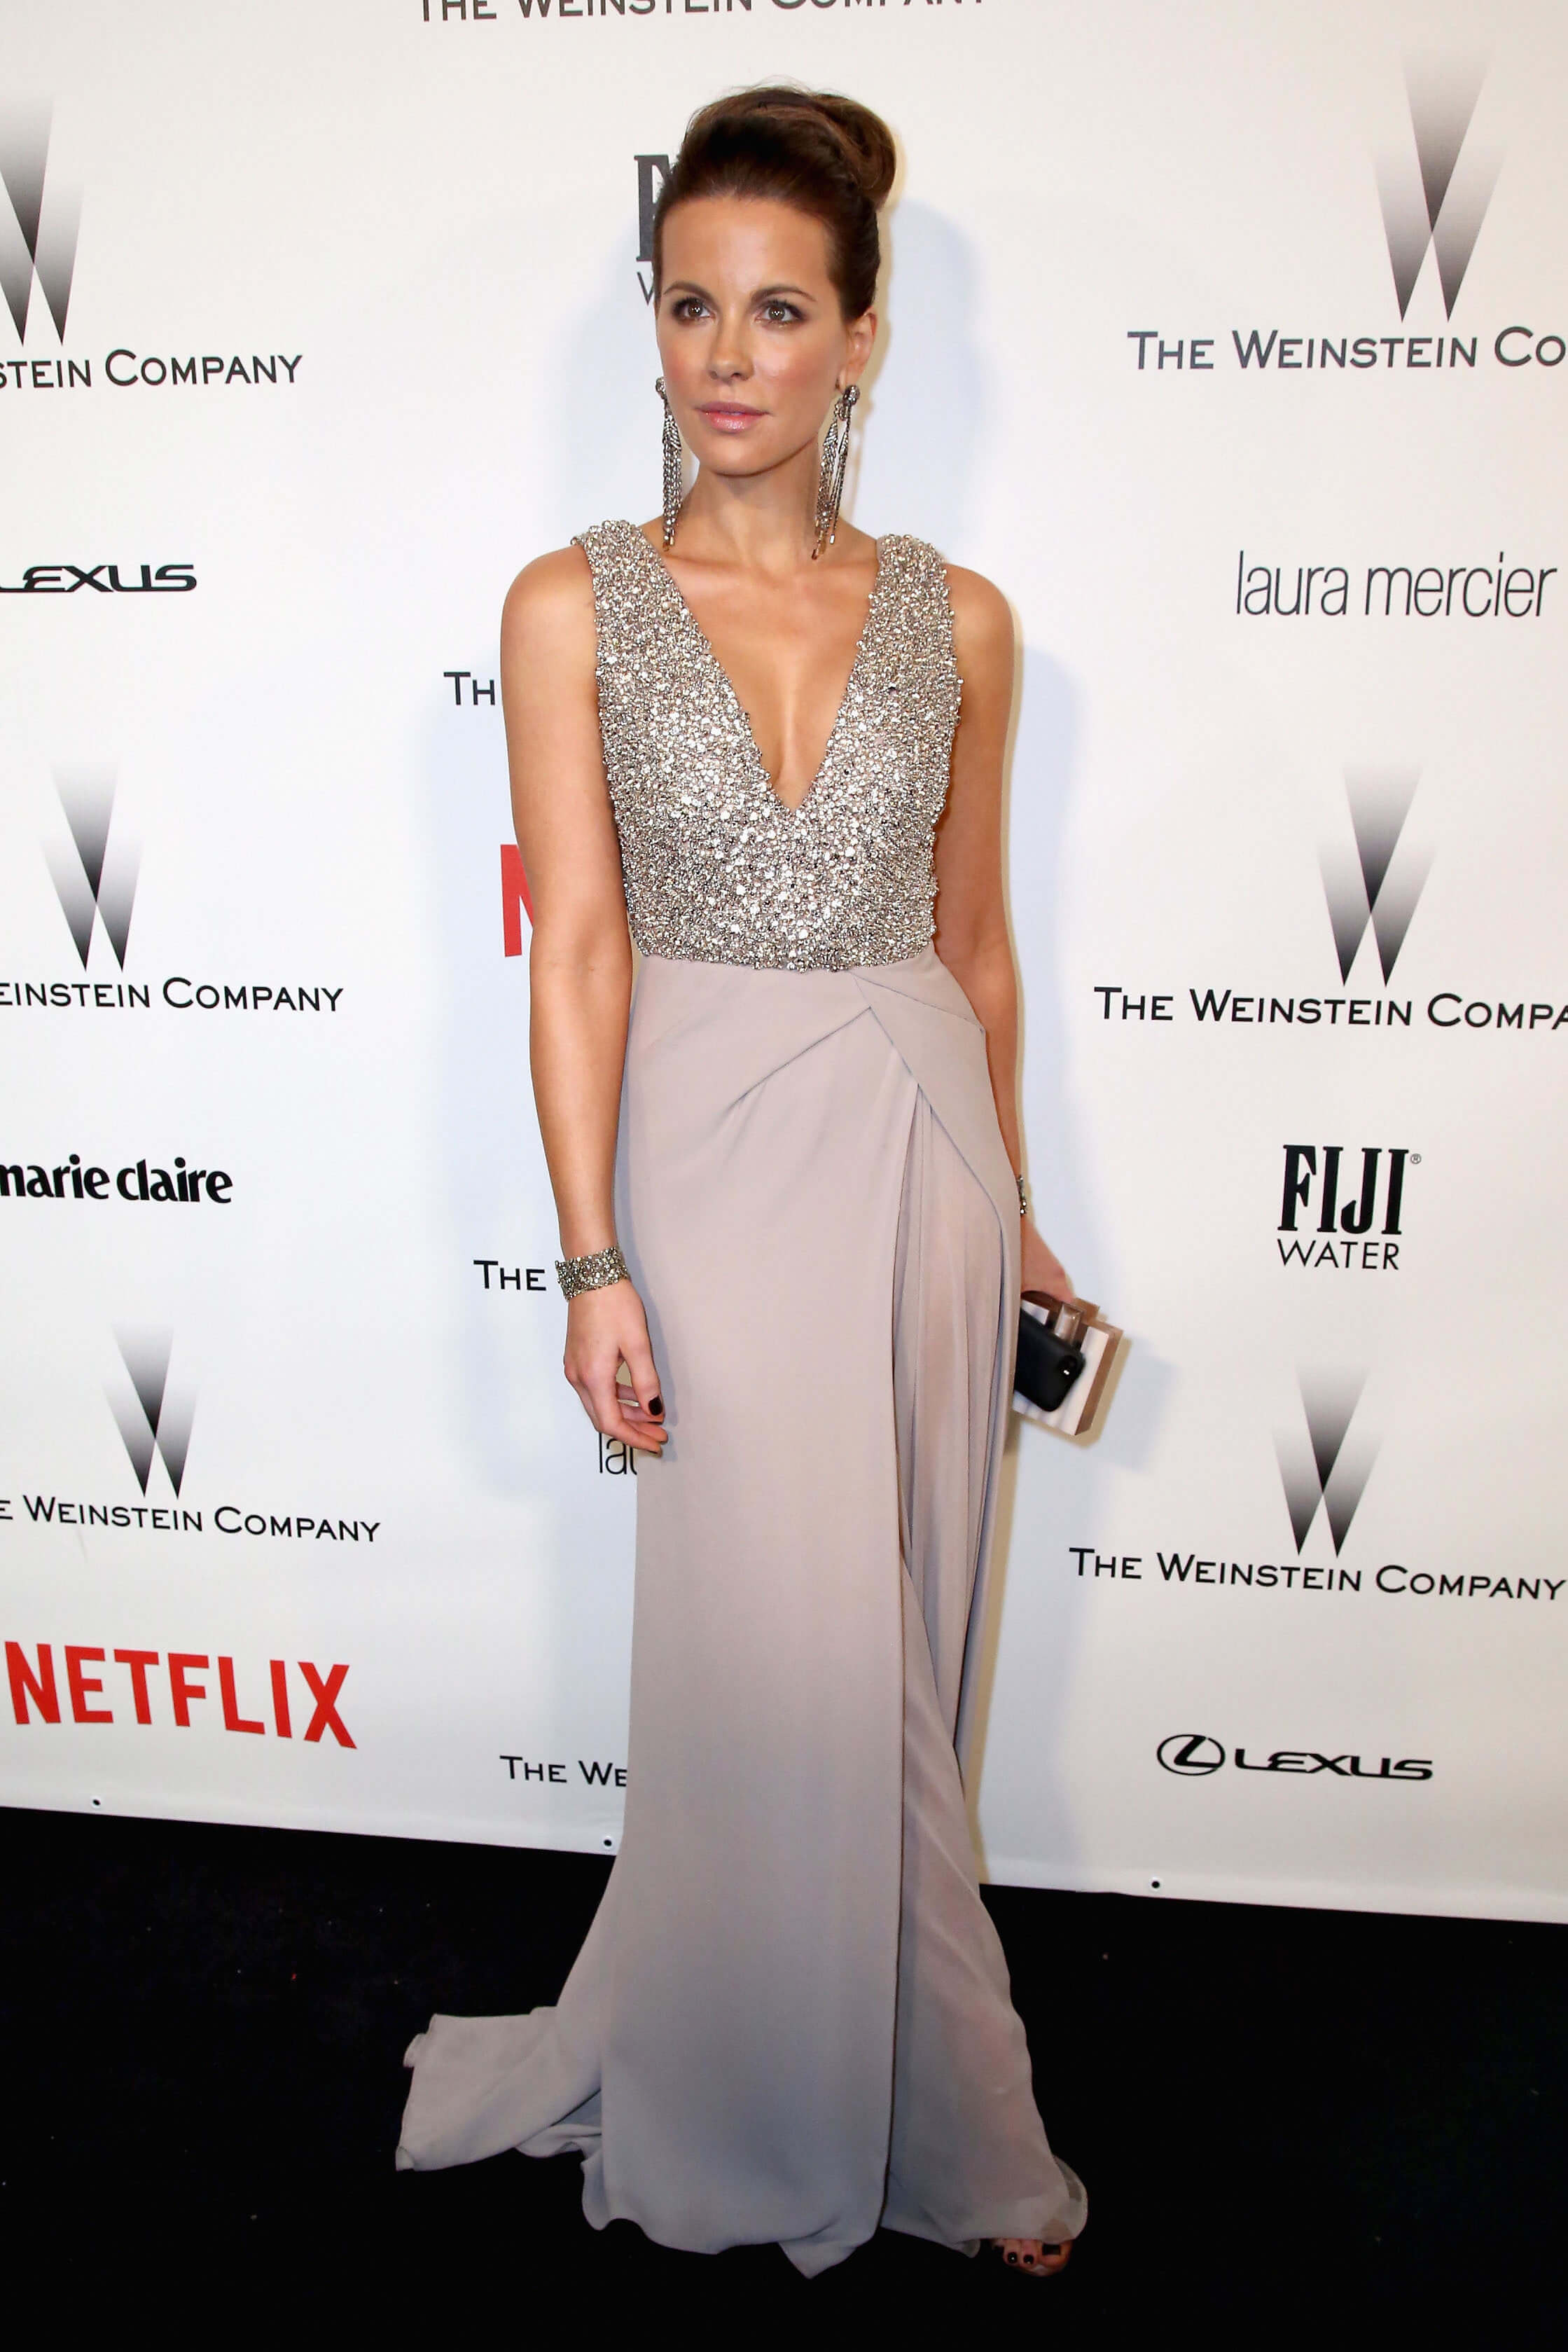 Kate Beckinsale dress pic